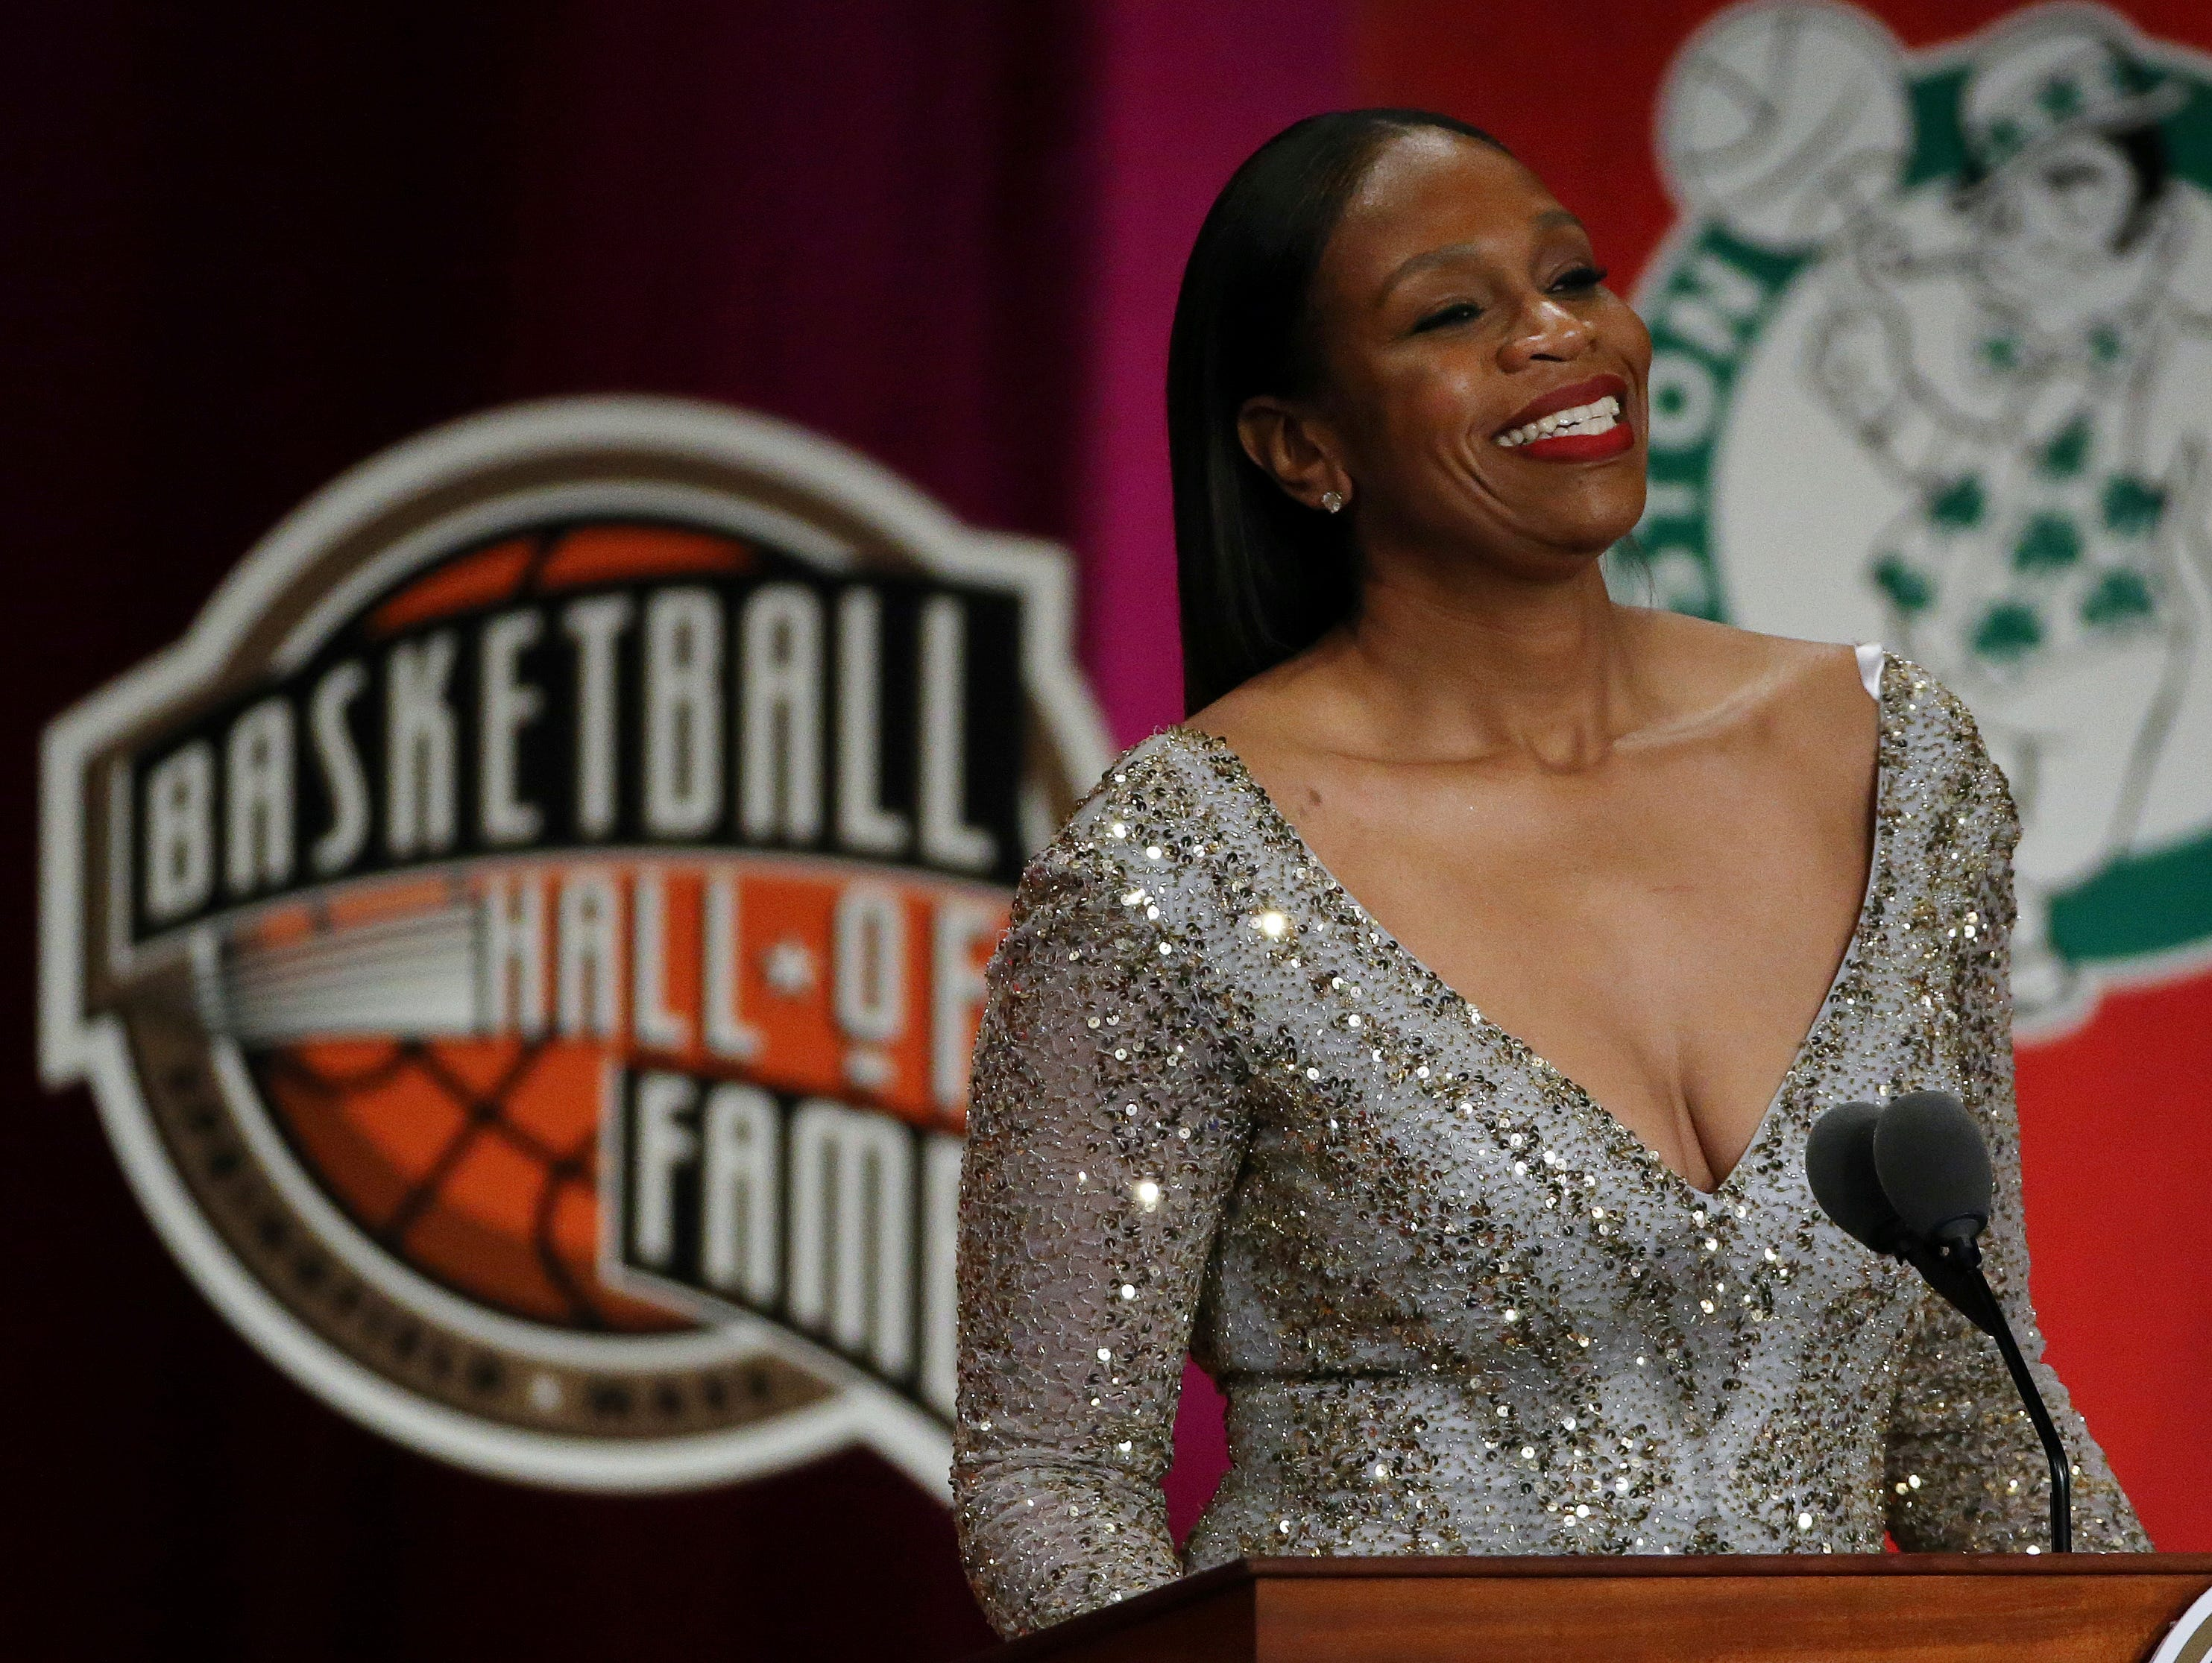 Tina Thompson speaks during ceremonies at the Basketball Hall of Fame.